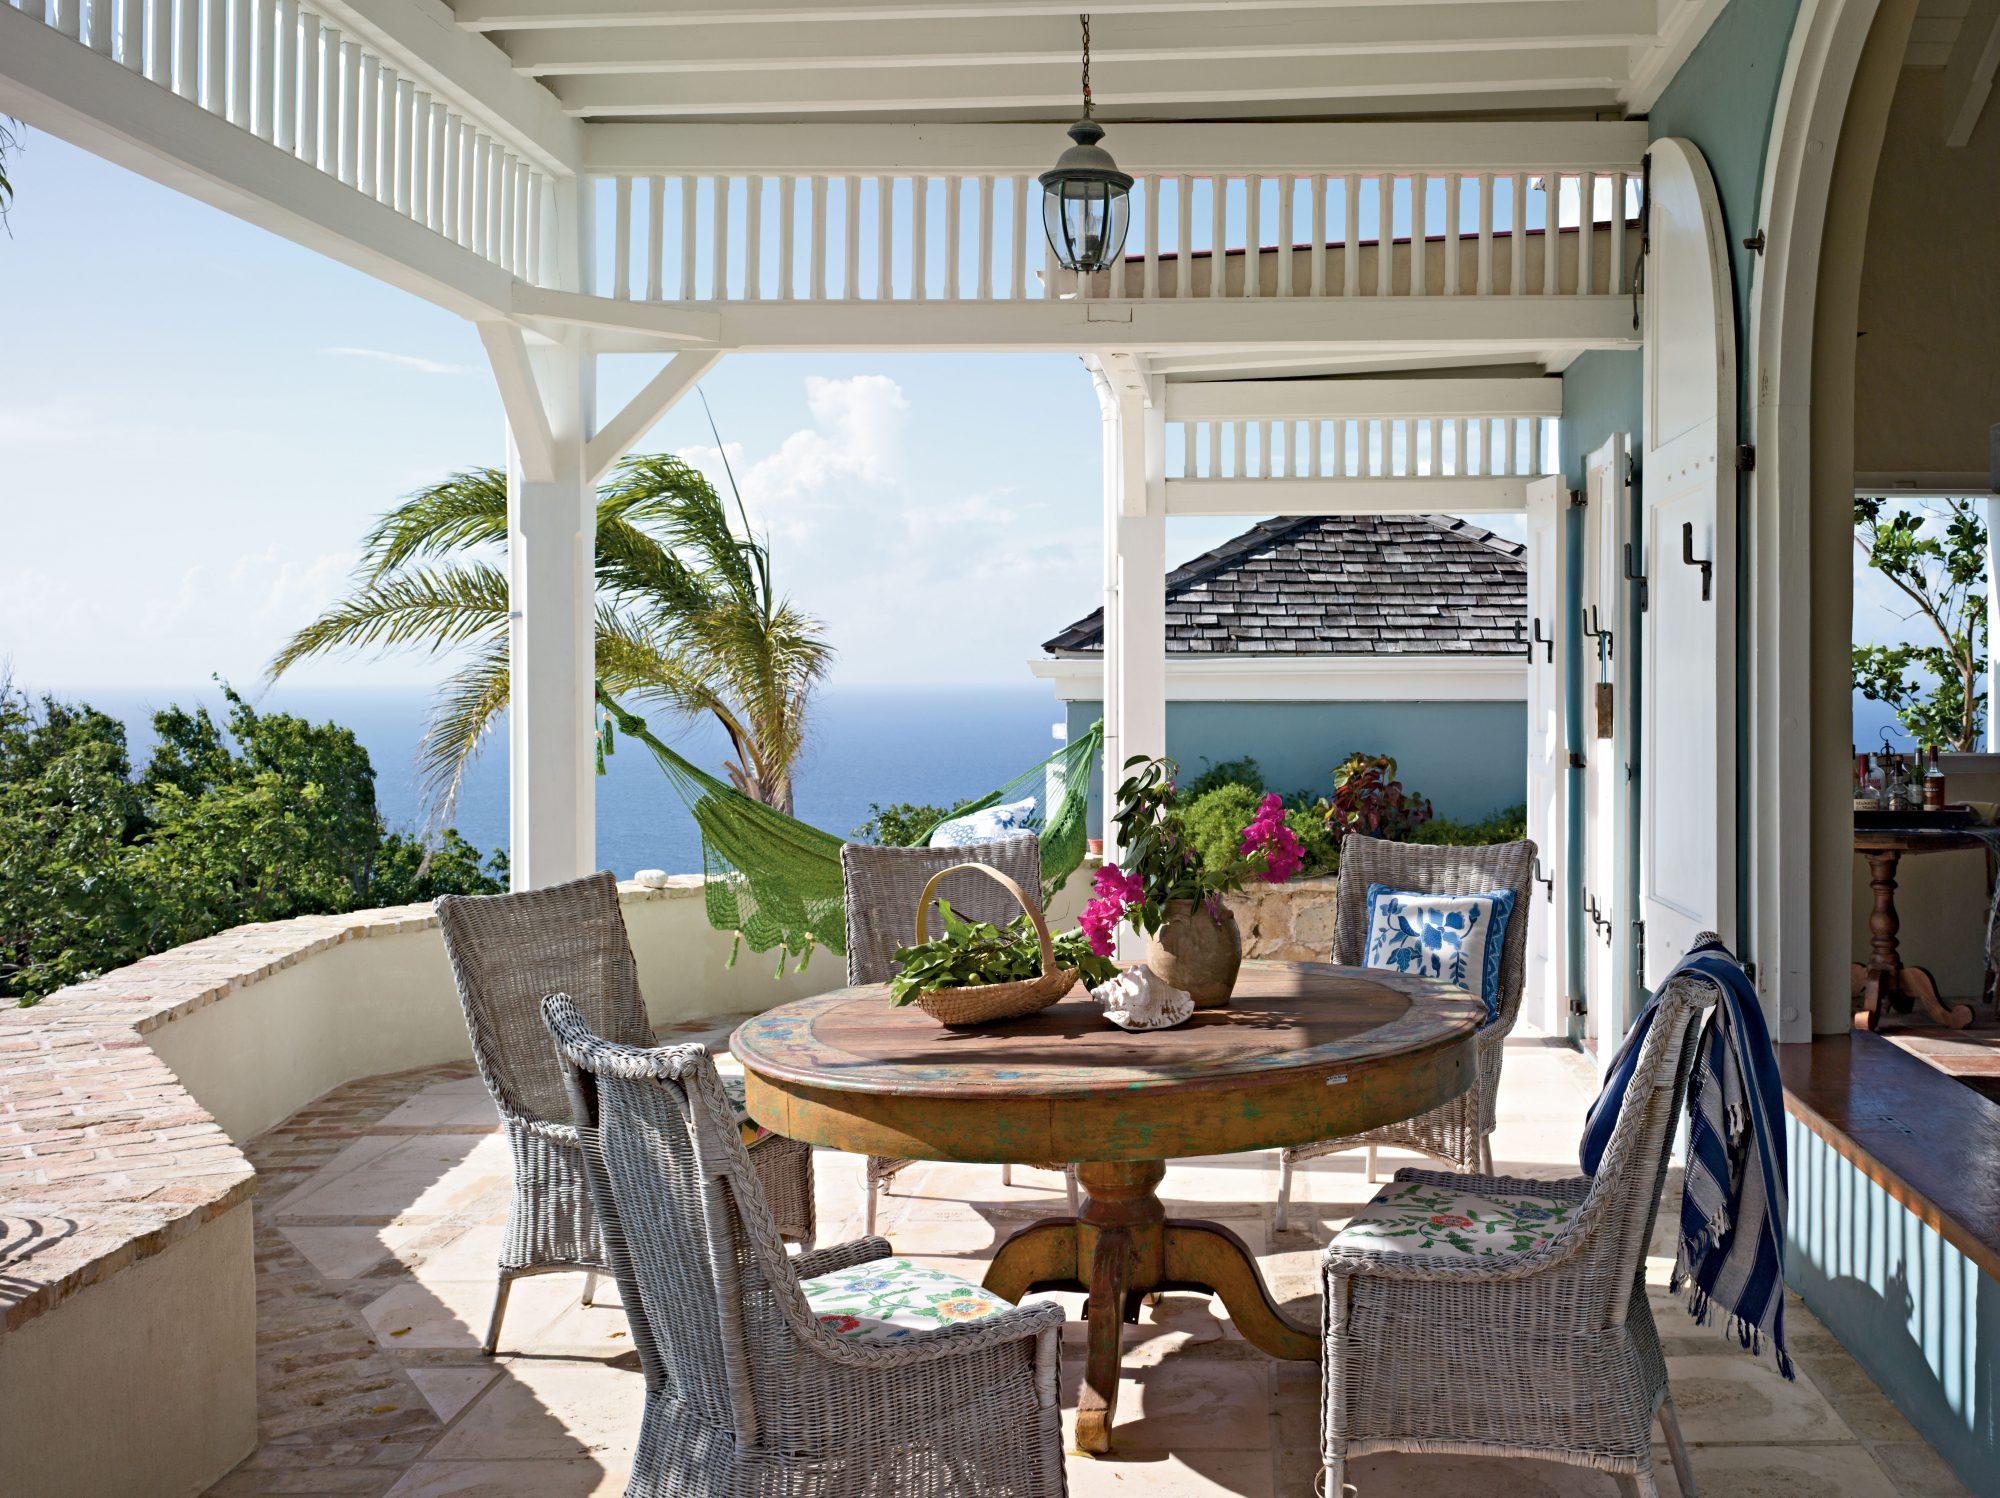 Our 25 Prettiest Island Rooms: Entertaining Spot